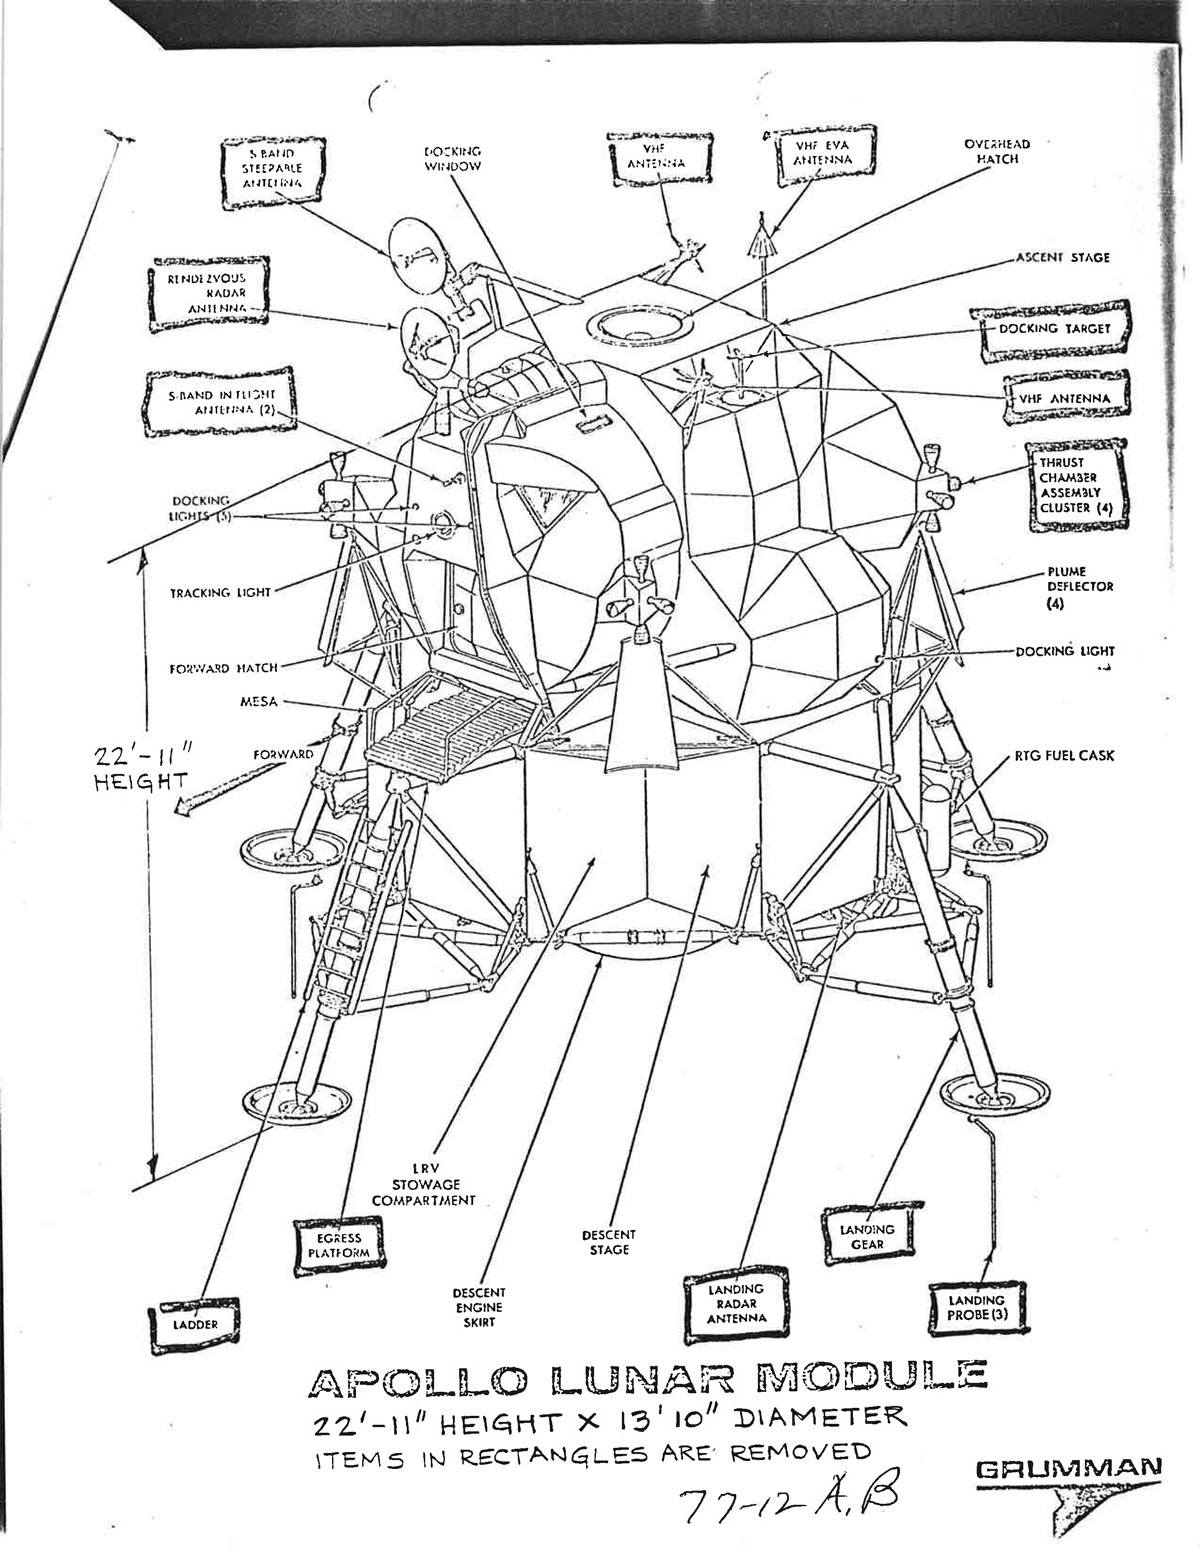 Lunar Module Quick Reference Data, Page 2